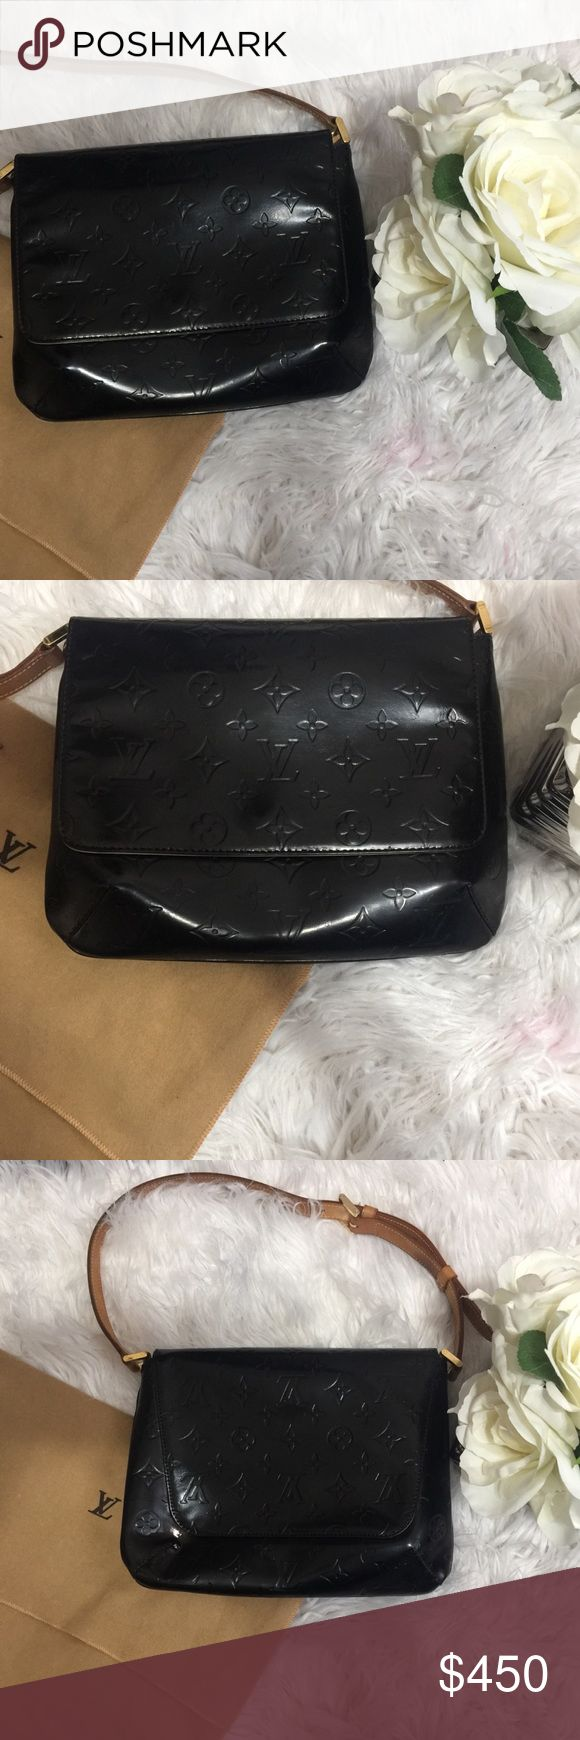 """Louis Vuitton Vernis Thompson street shoulder bag Authentic Louis Vuitton Thompson street shoulder bag. Like new condition. Custom dyed a beautiful black ebony for a unique look. Sealed for weather protection. Cones with Louis Vuitton dust bag. Width 9.8"""" length 8.2"""" approx. ask for free shipping! Louis Vuitton Bags Shoulder Bags"""